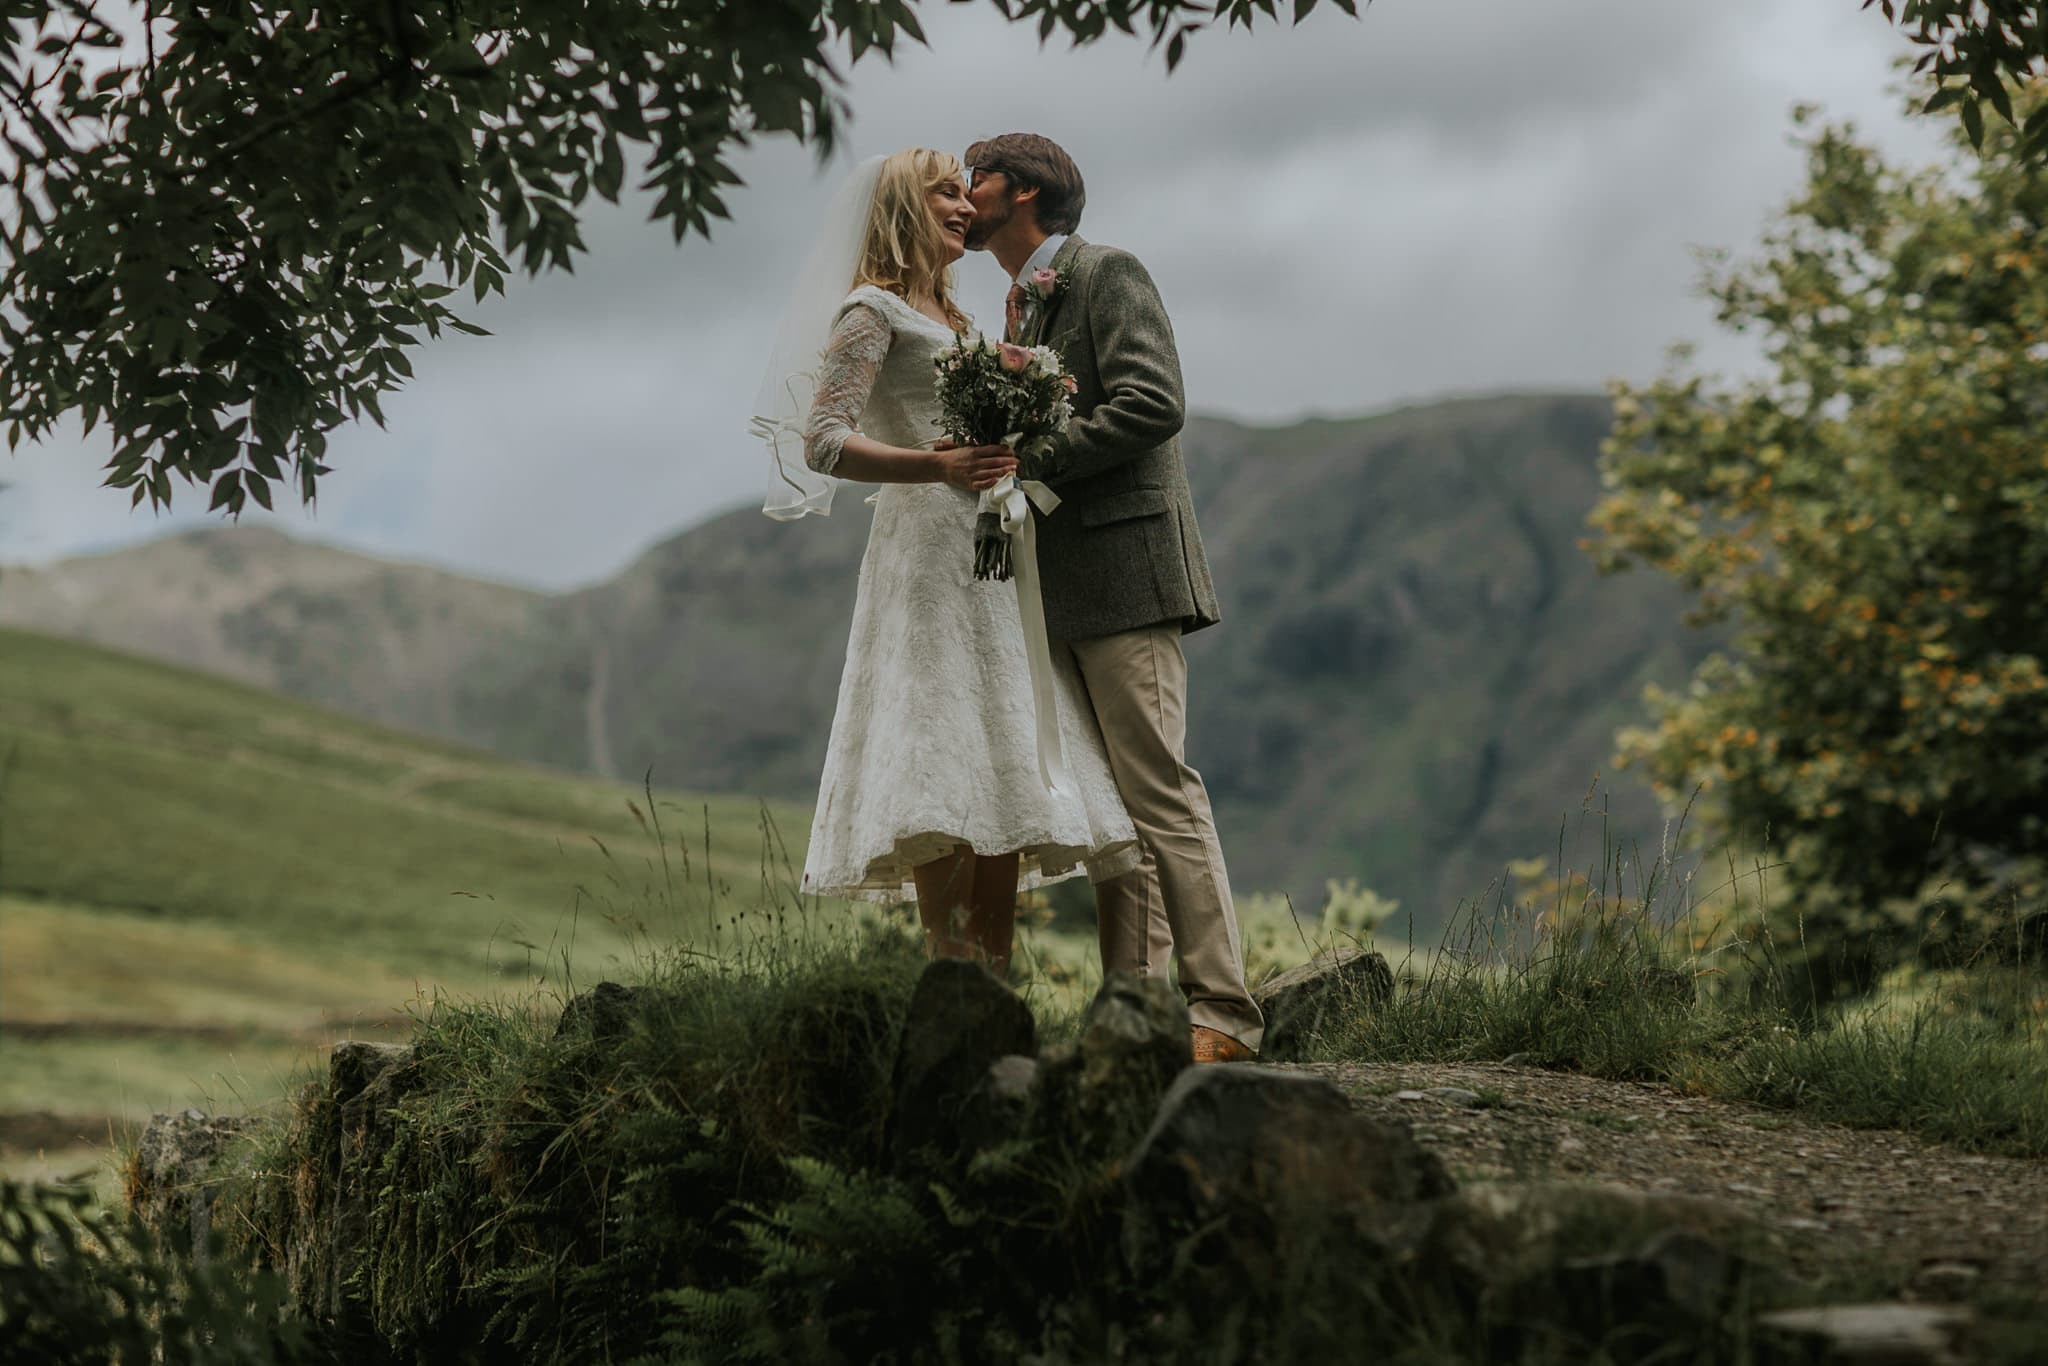 Kissing on the bridge in the Lake District